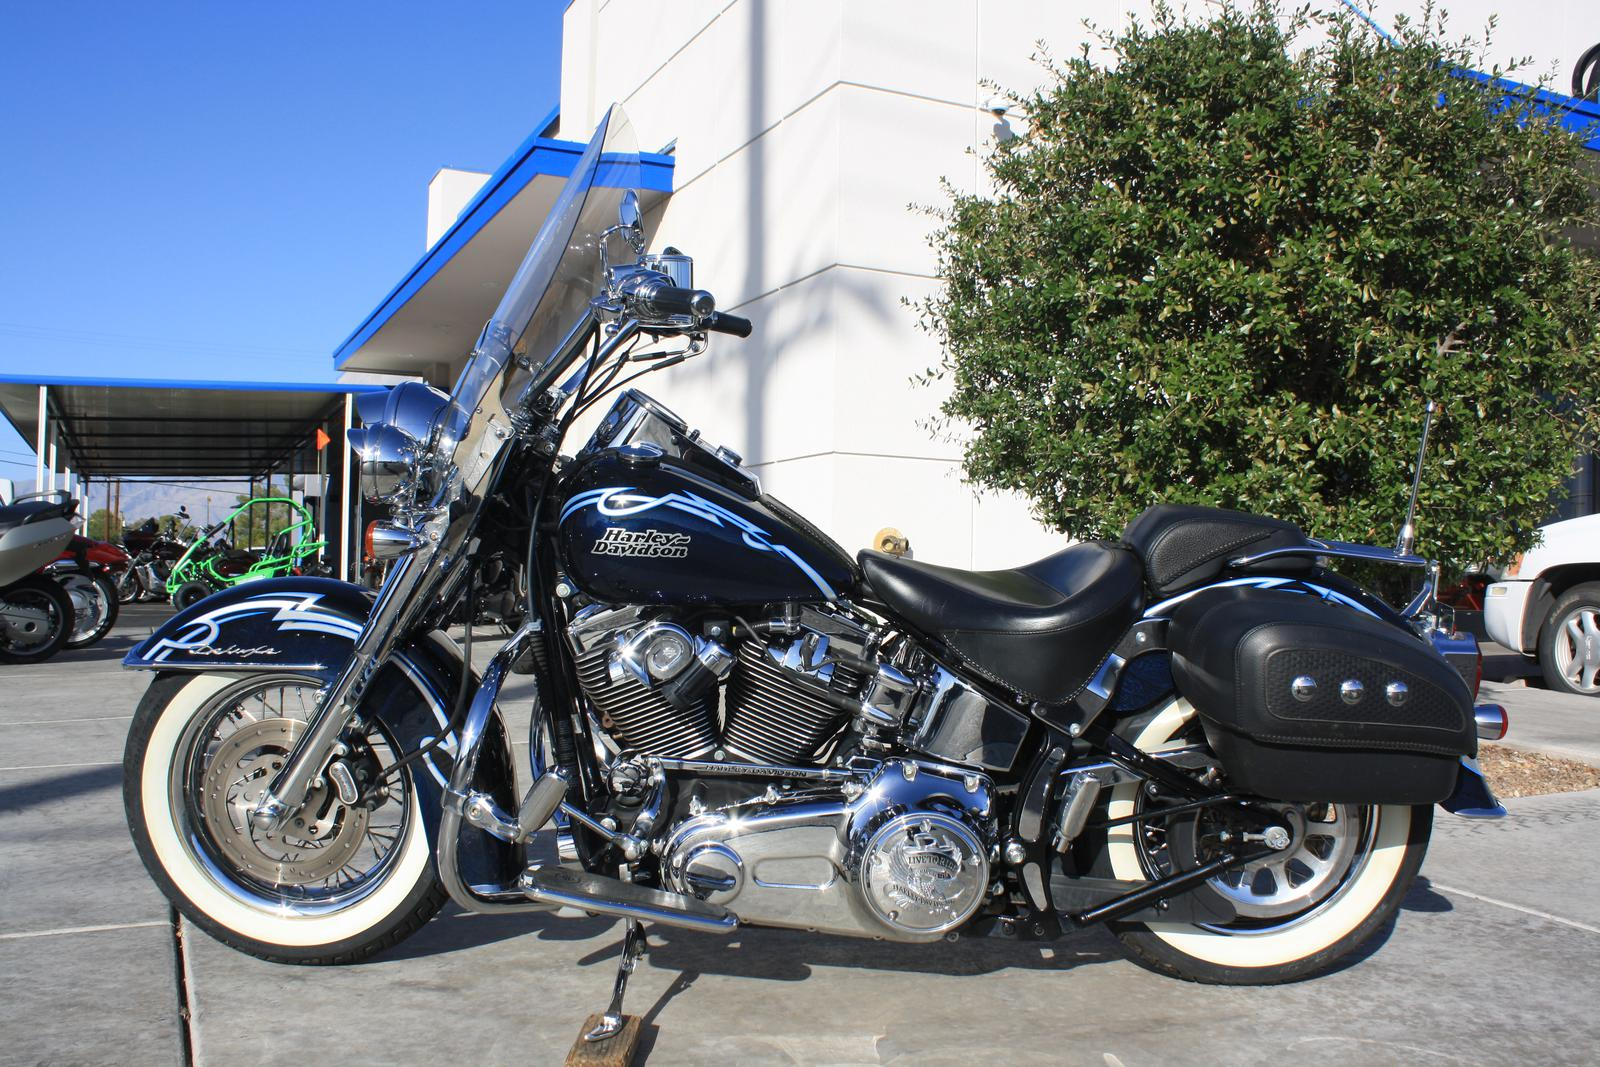 2007 Harley Davidson Flstn Softail Deluxe With Factory